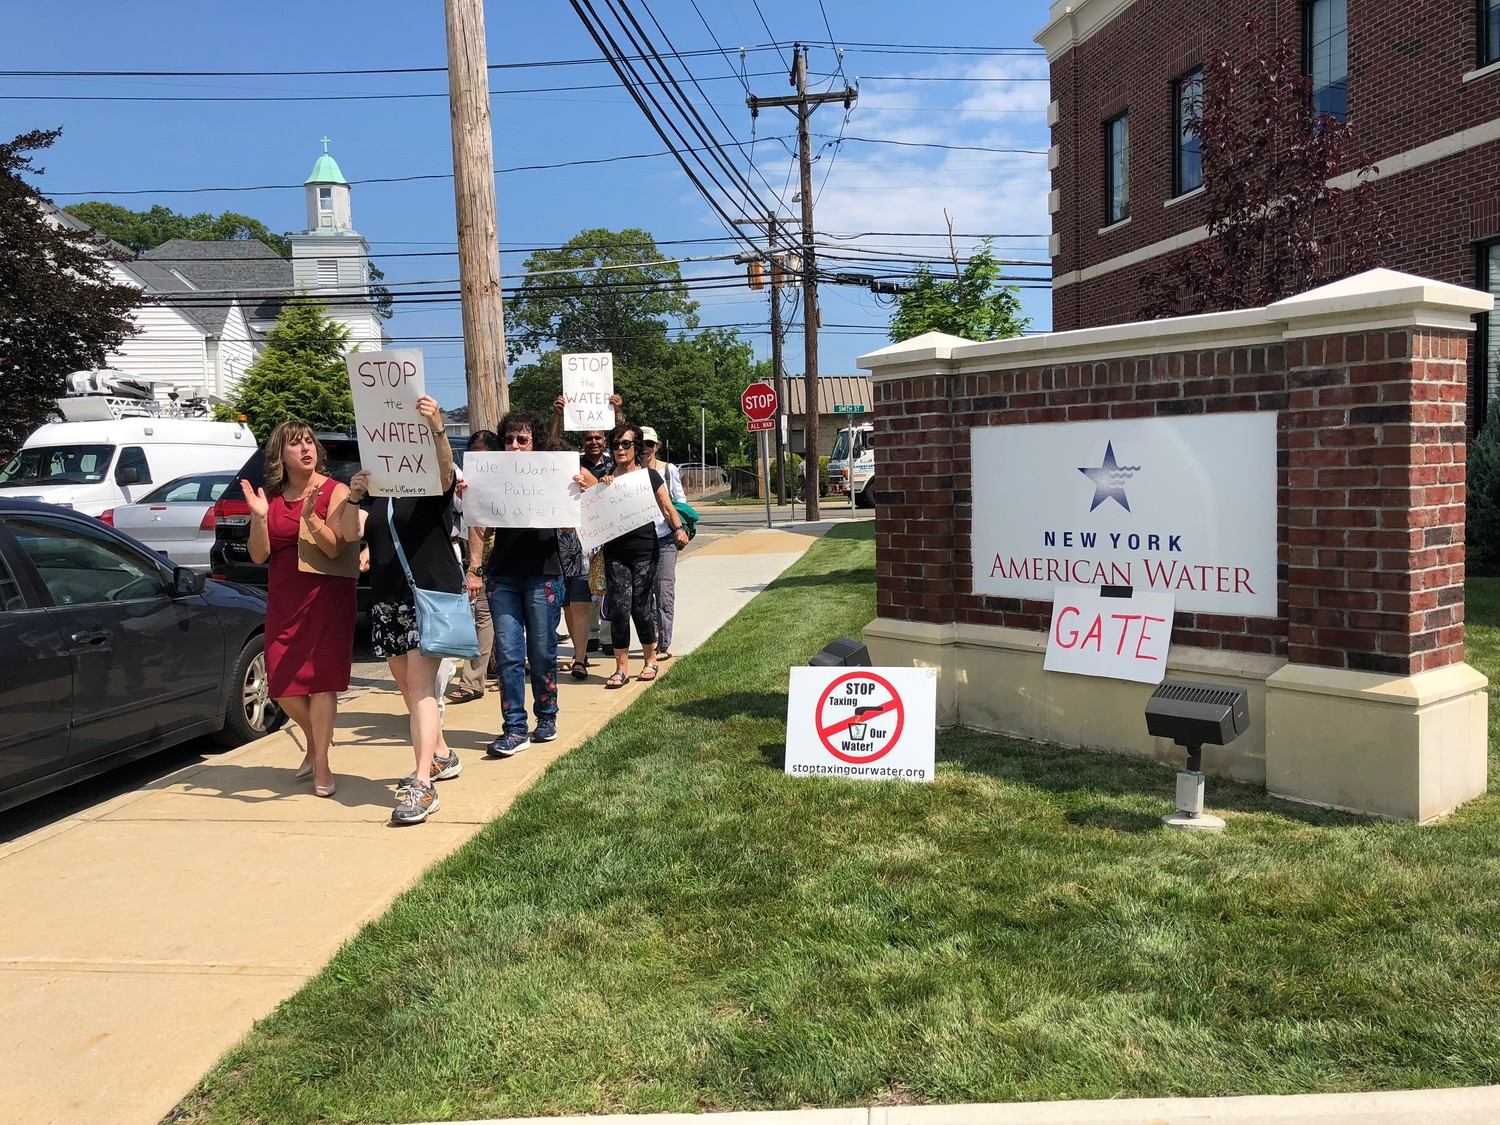 Assemblywoman Christine Pellegrino, far left, marched with protesters outside New York American Water's offices in Merrick on July 12, after announcing legislation to replace the company.